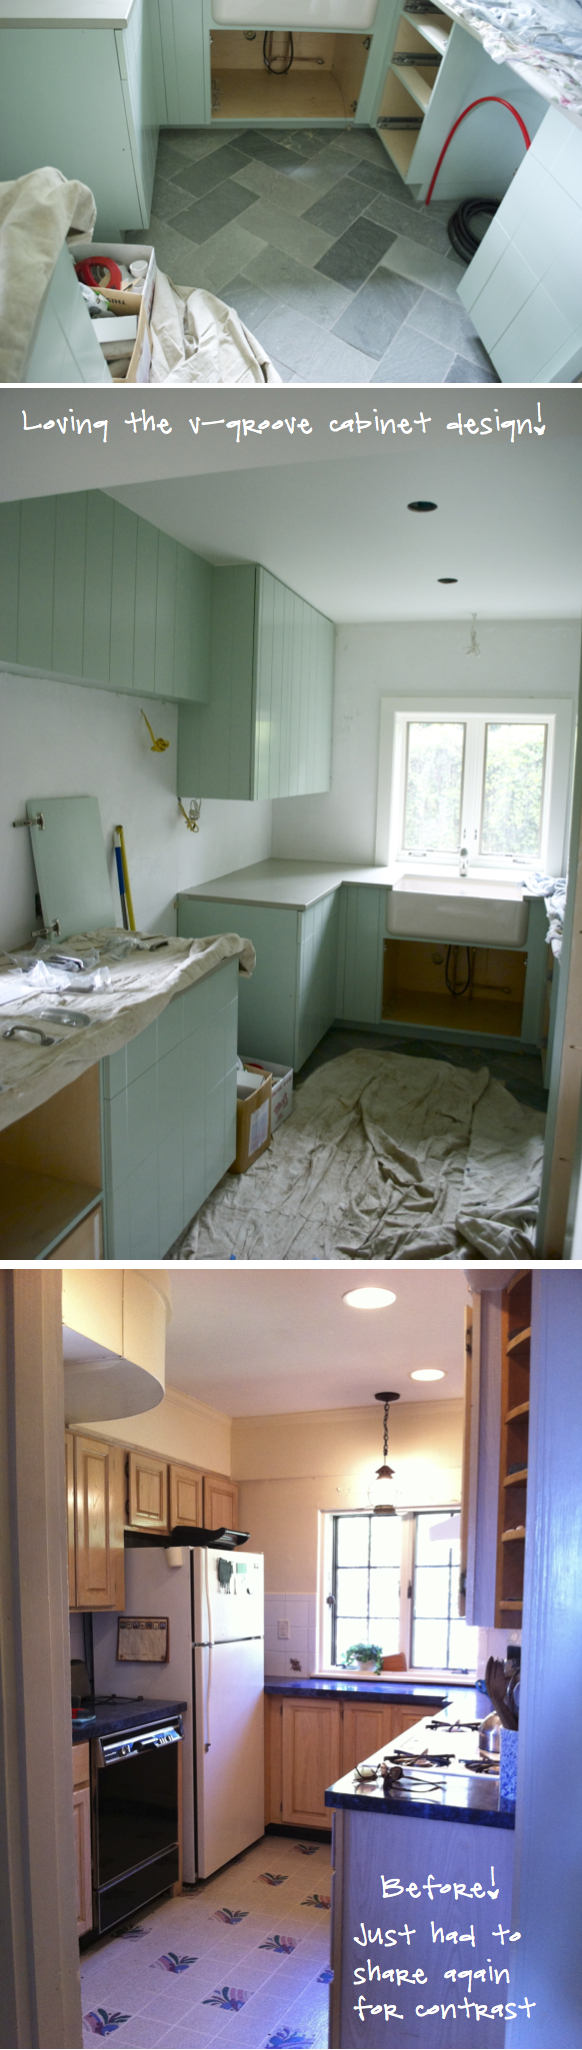 Blog Post x_ stone cottage painted cabinetry JPG